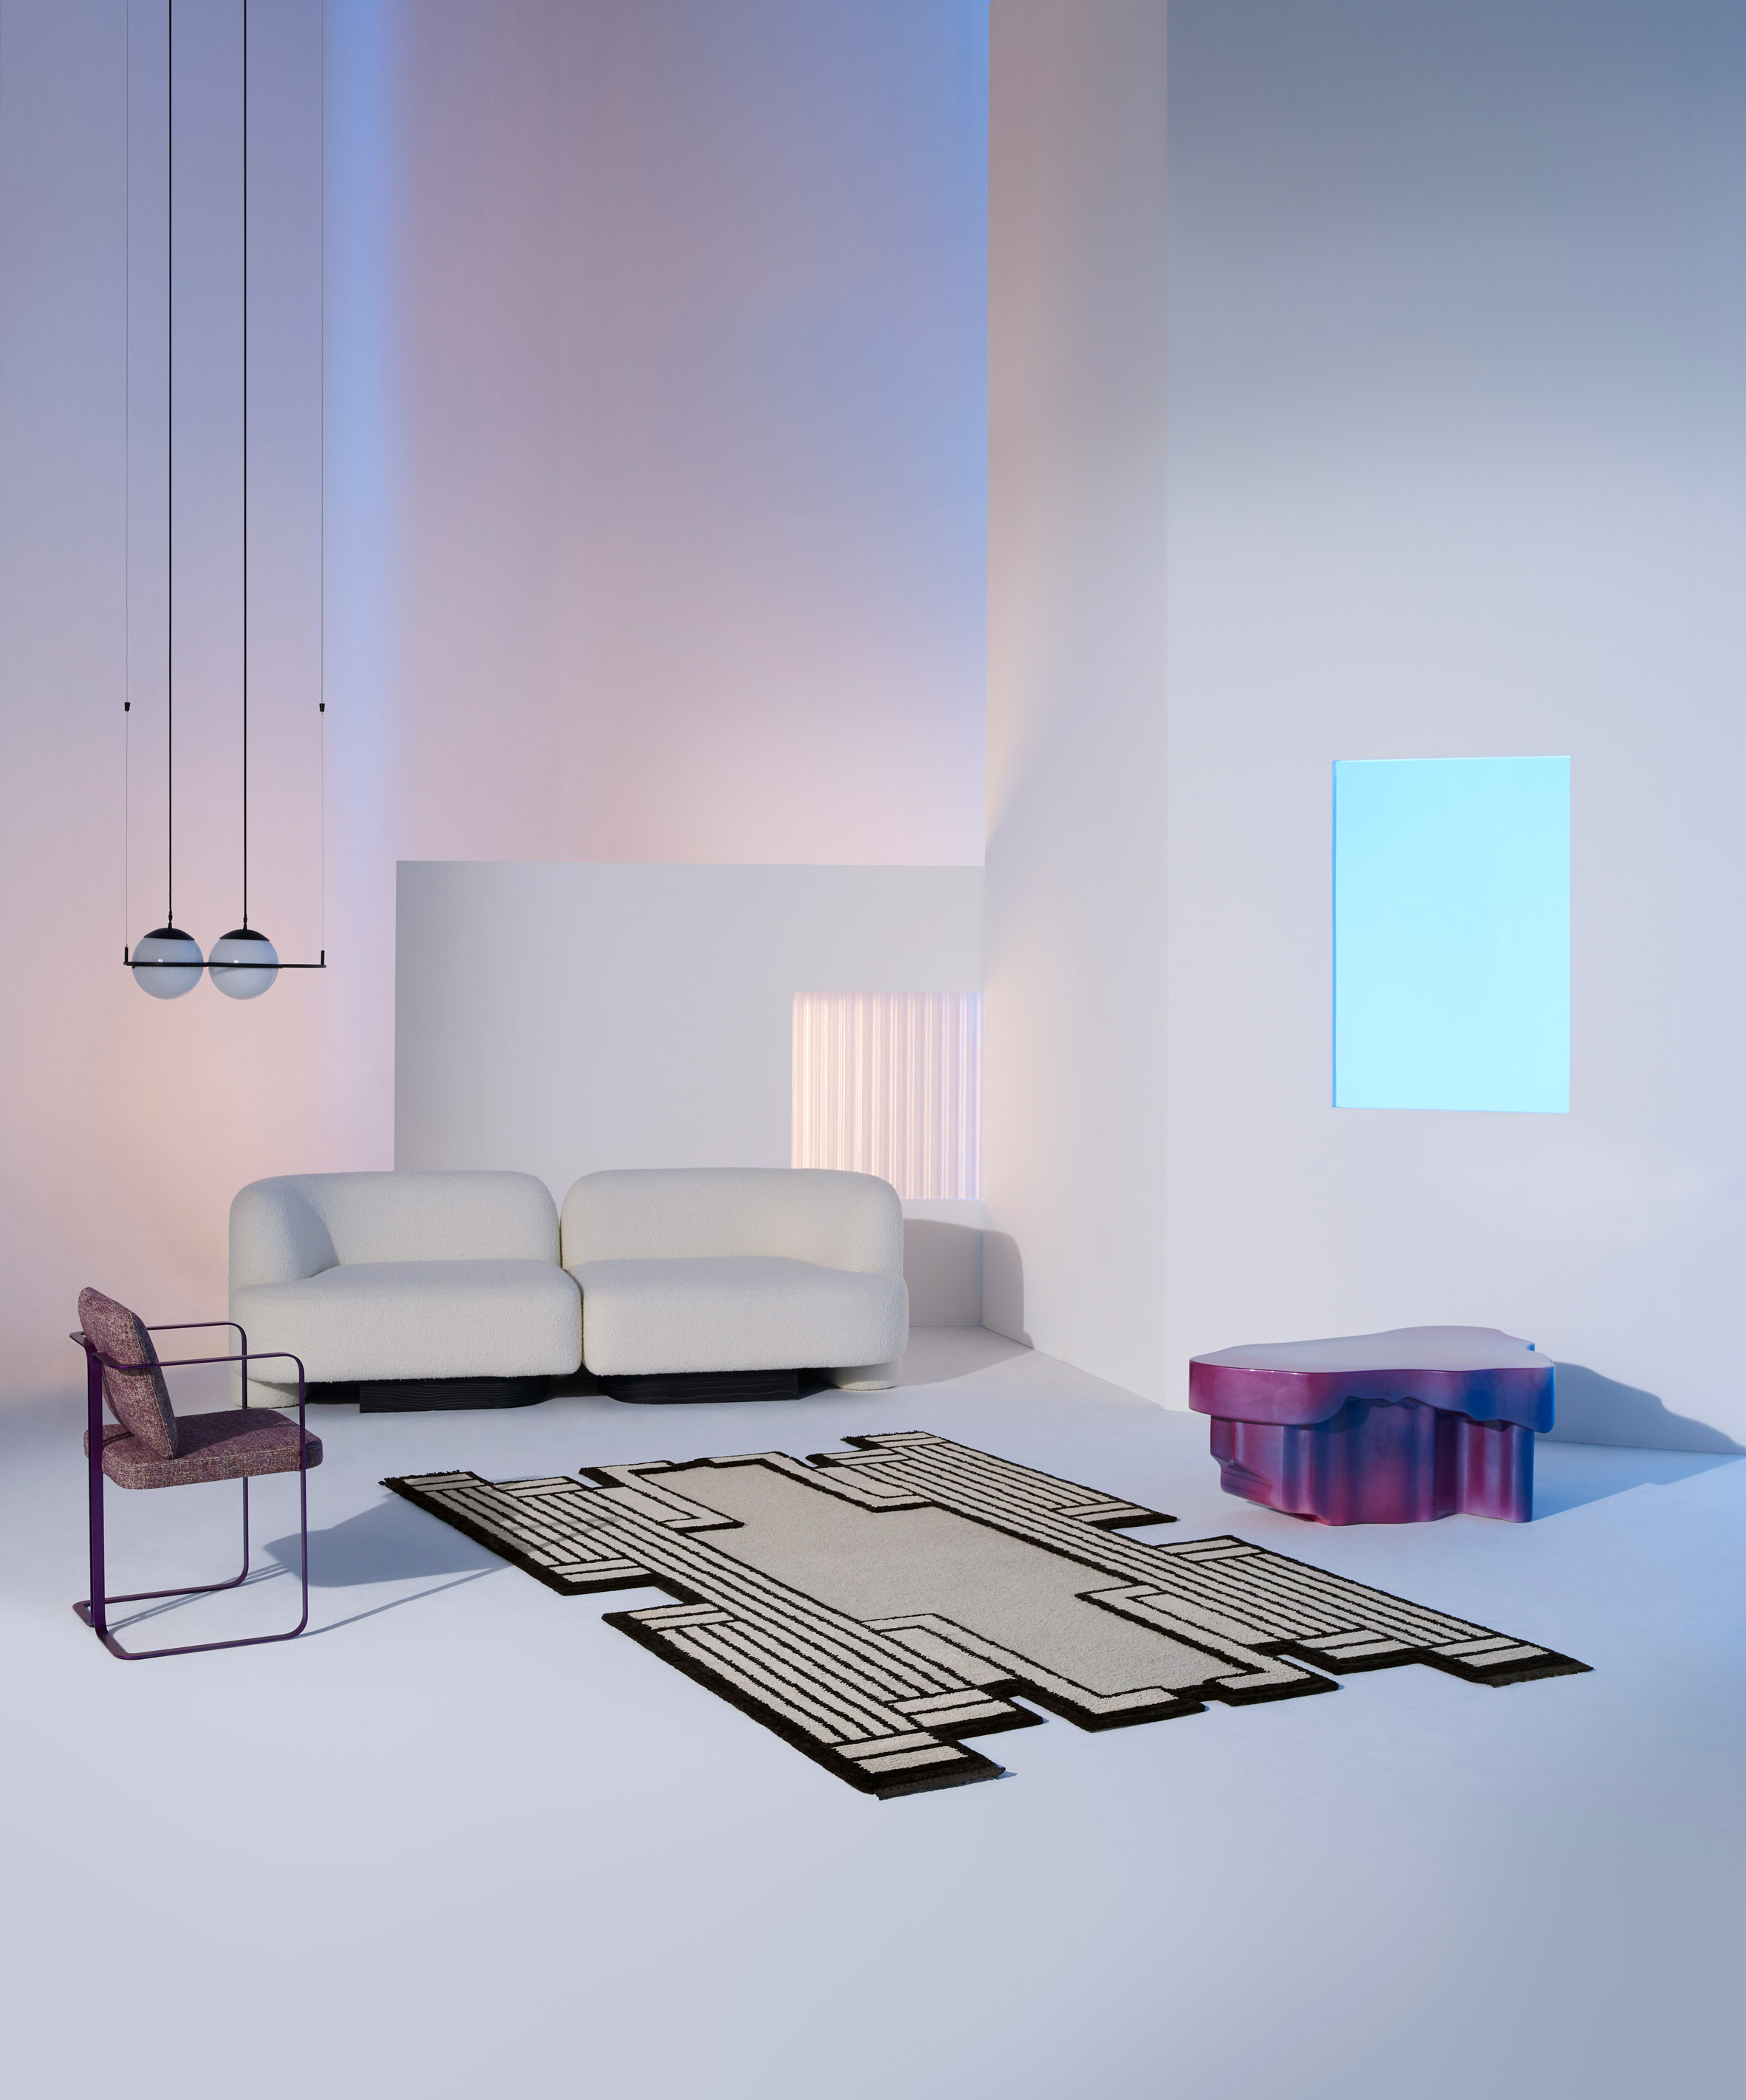 Asmara by Federico Pepe from the Cc-Tapis Spectrum catalogue.